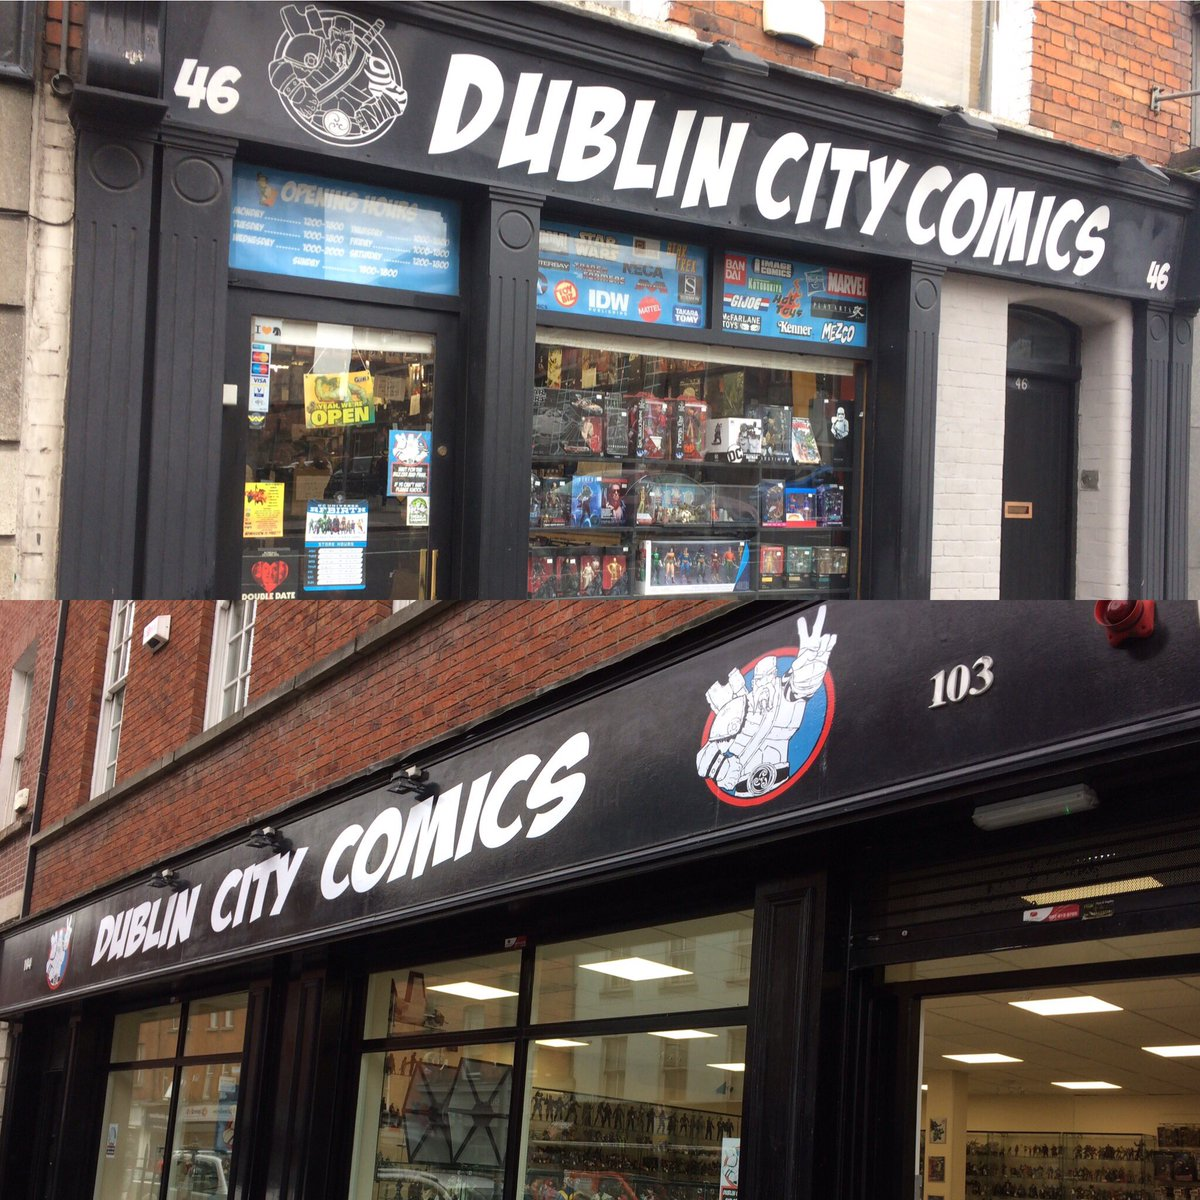 Dublin city comics dublincitycomic twitter dublin comic con and geek ireland solutioingenieria Gallery